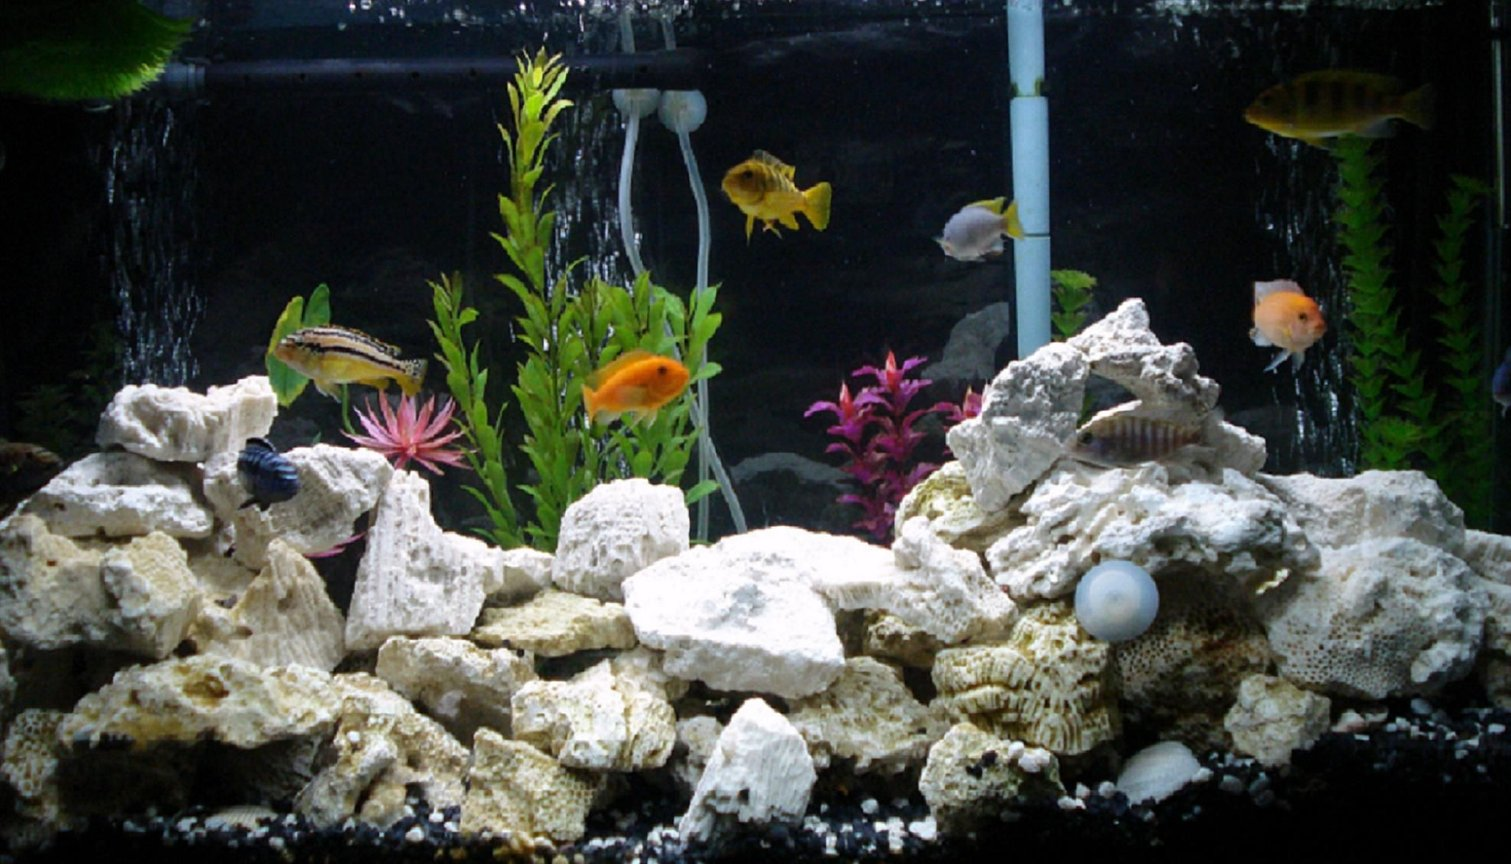 40 gallons freshwater fish tank (mostly fish and non-living decorations) - newest update